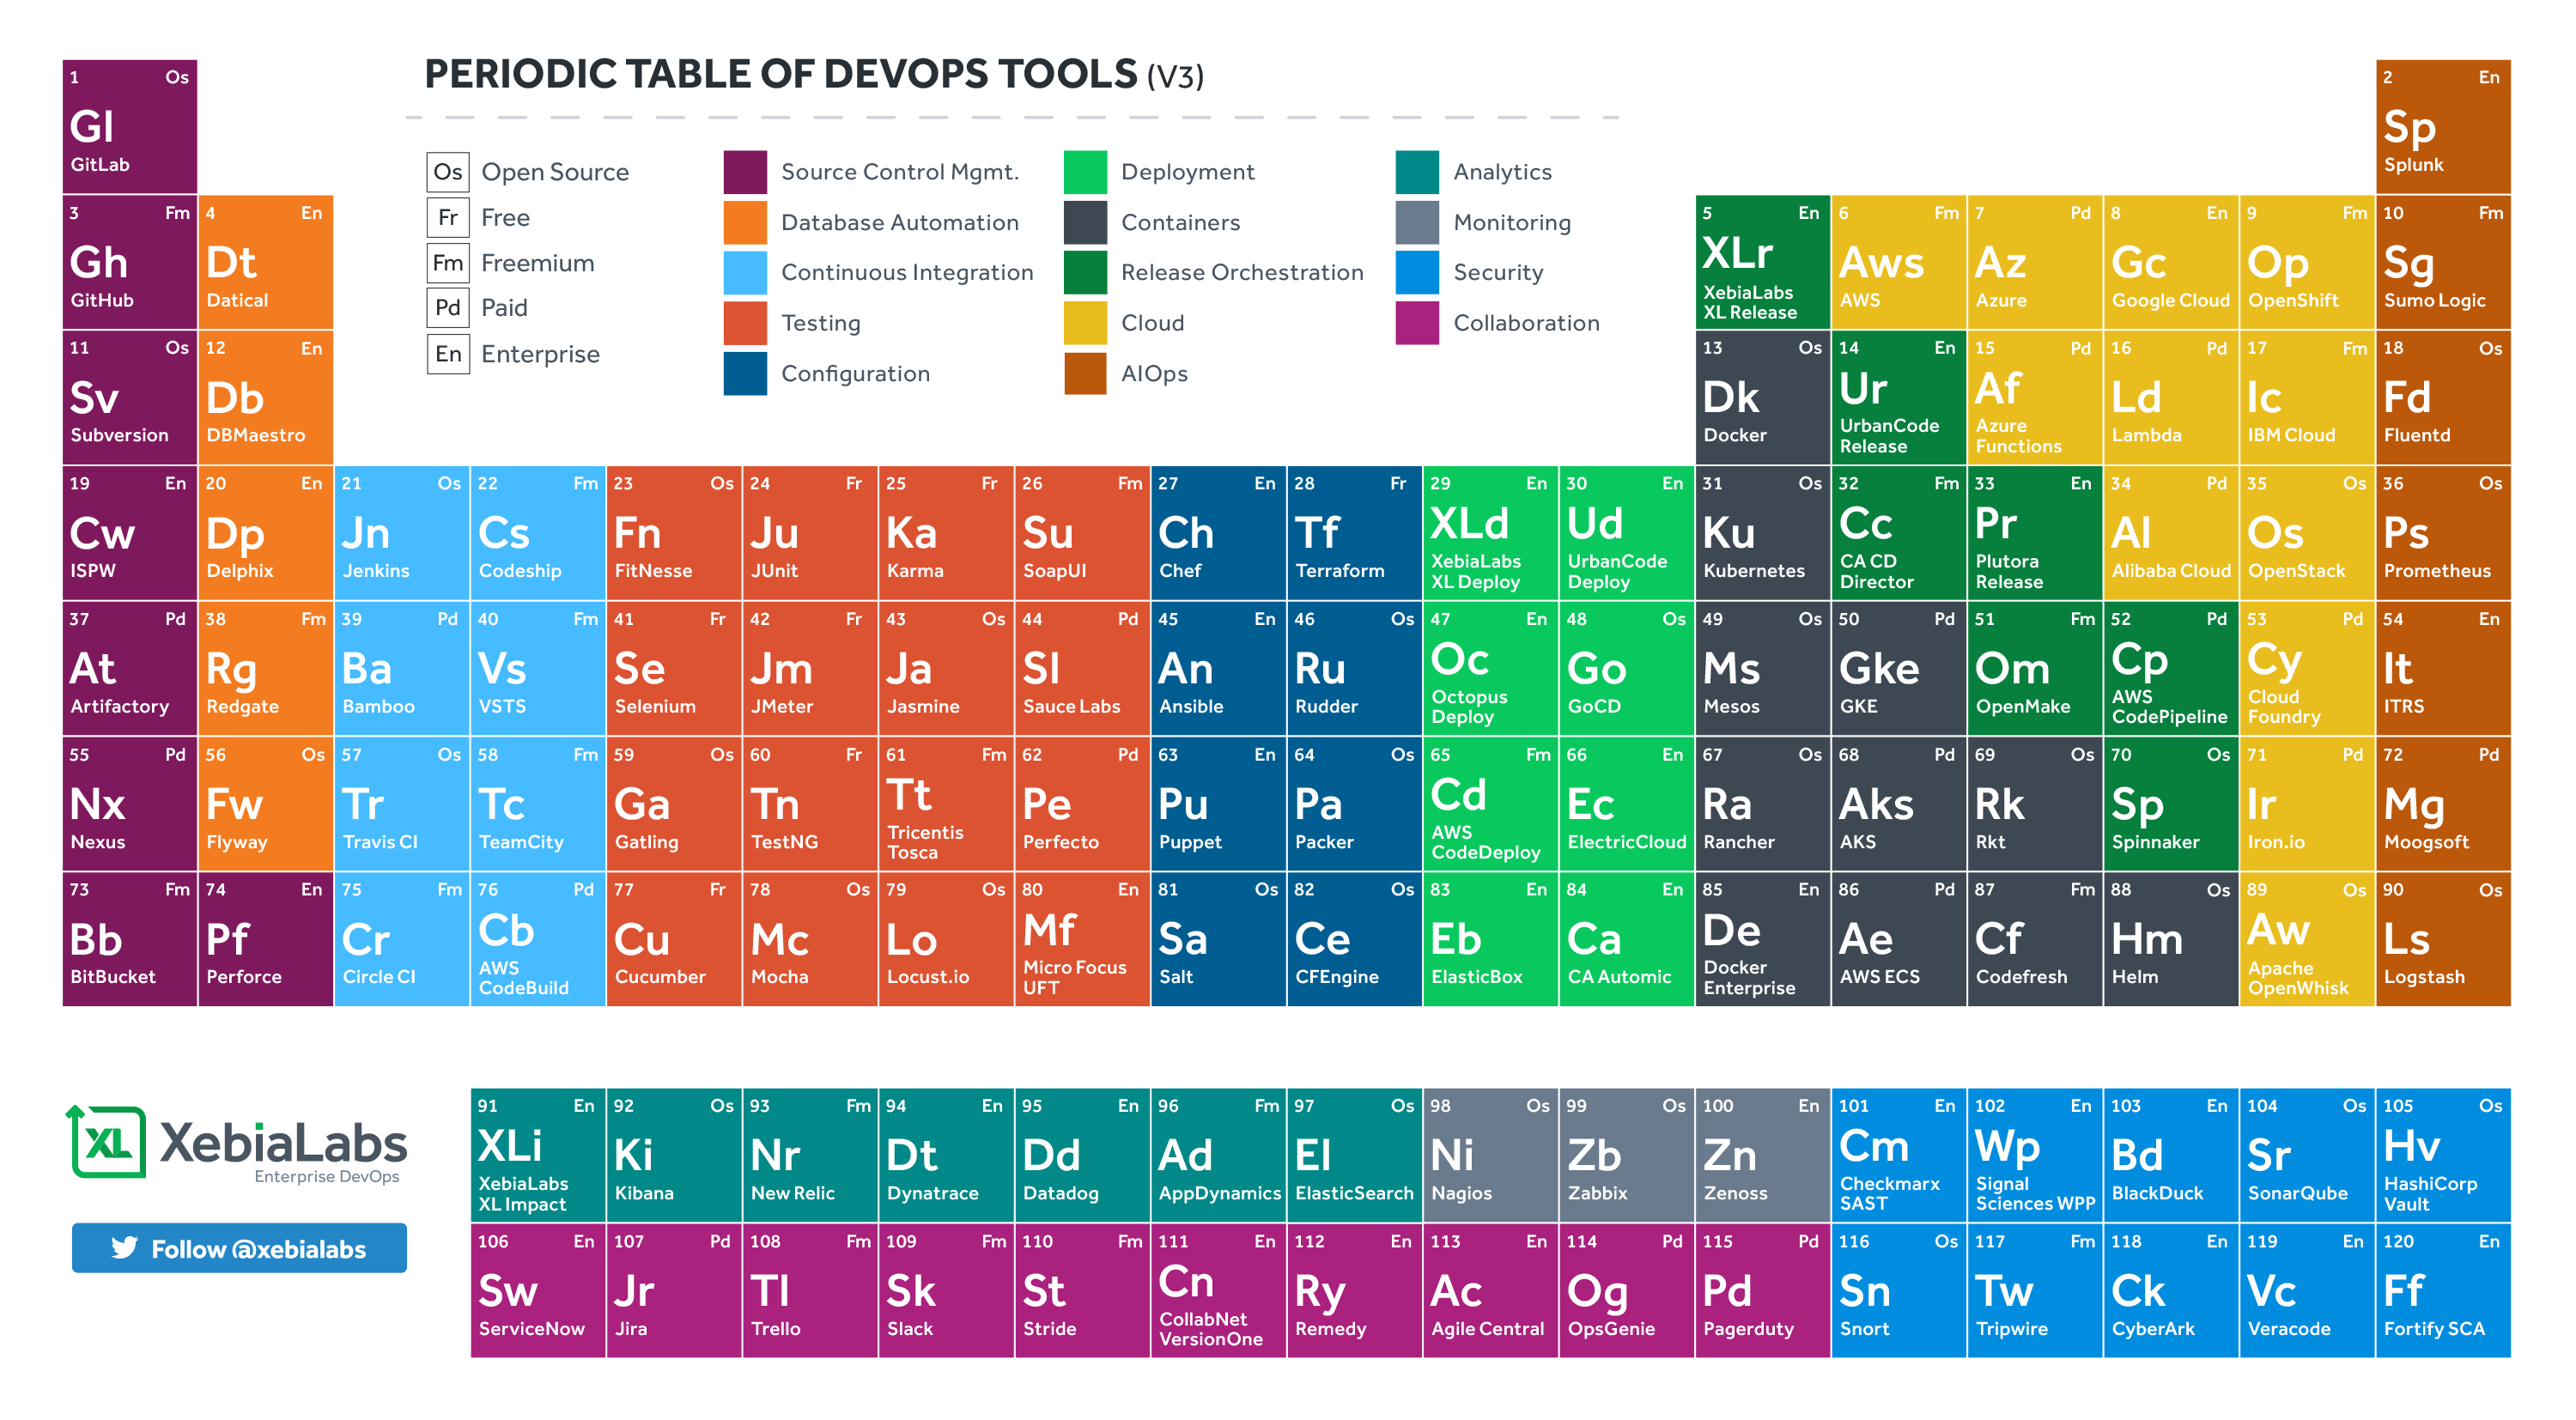 The Periodic Table of DevOps Tools